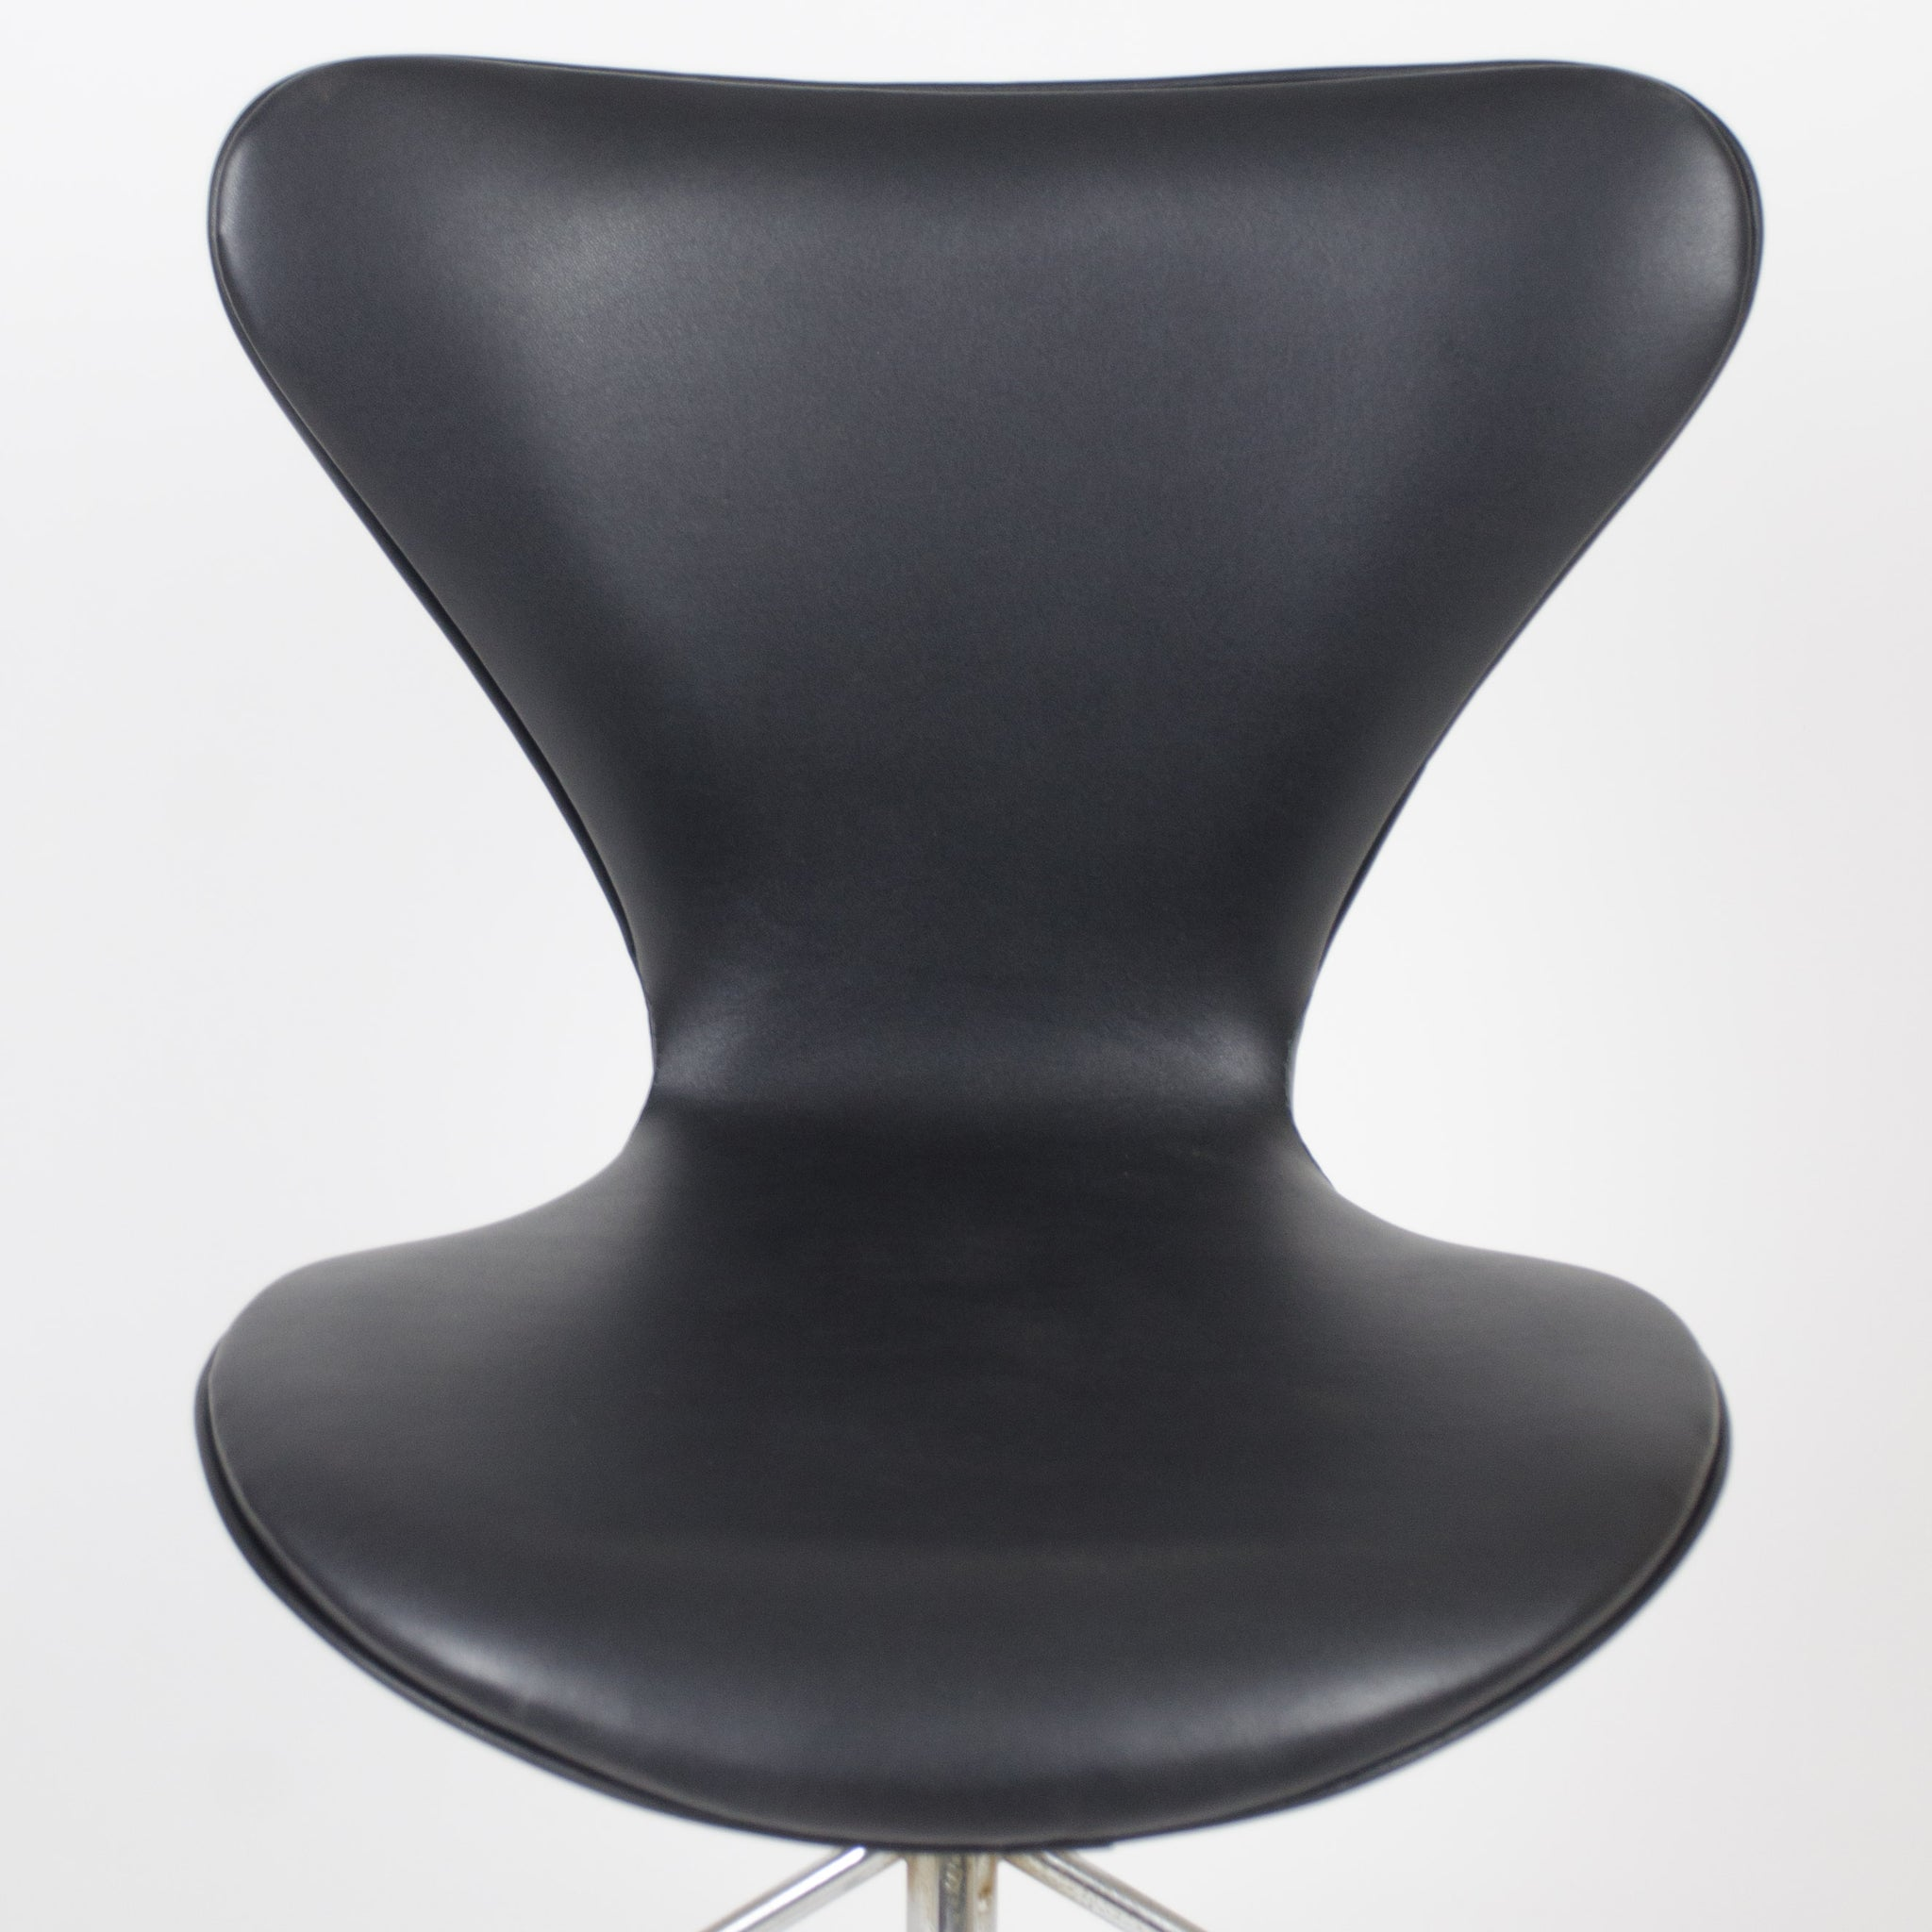 SOLD Arne Jacobsen Vintage Original 3117 for Fritz Hansen Denmark Rolling Desk Chair